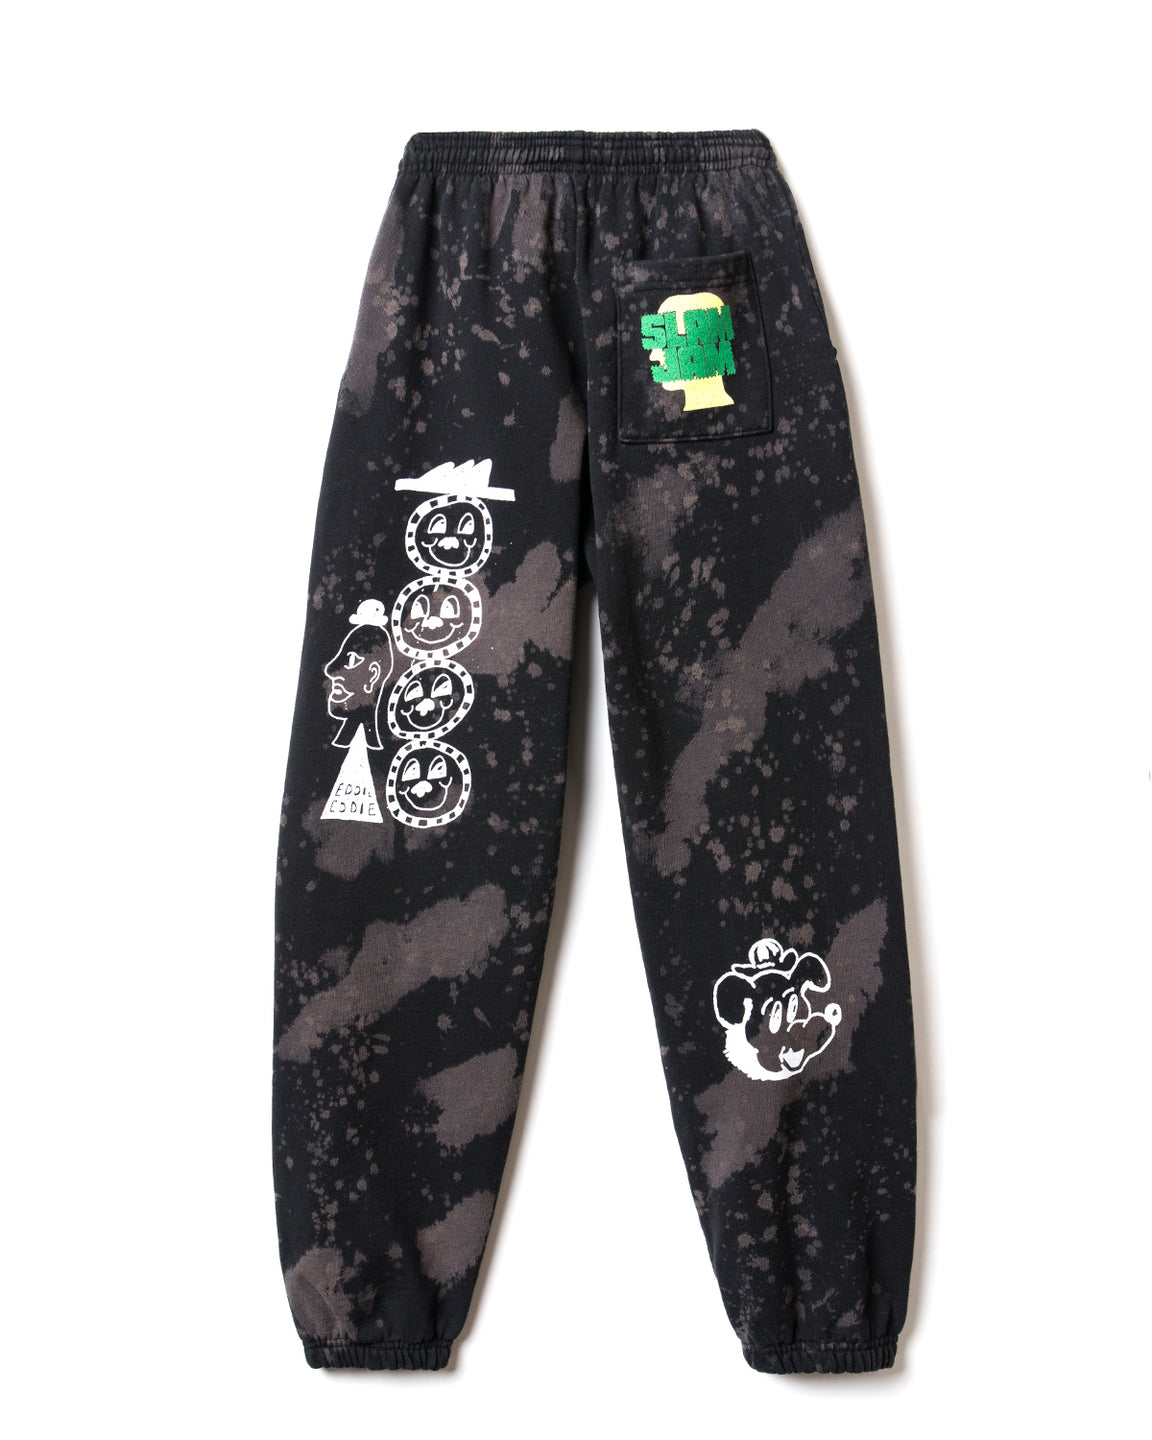 Slam Jam x Braindead Sweat Pant